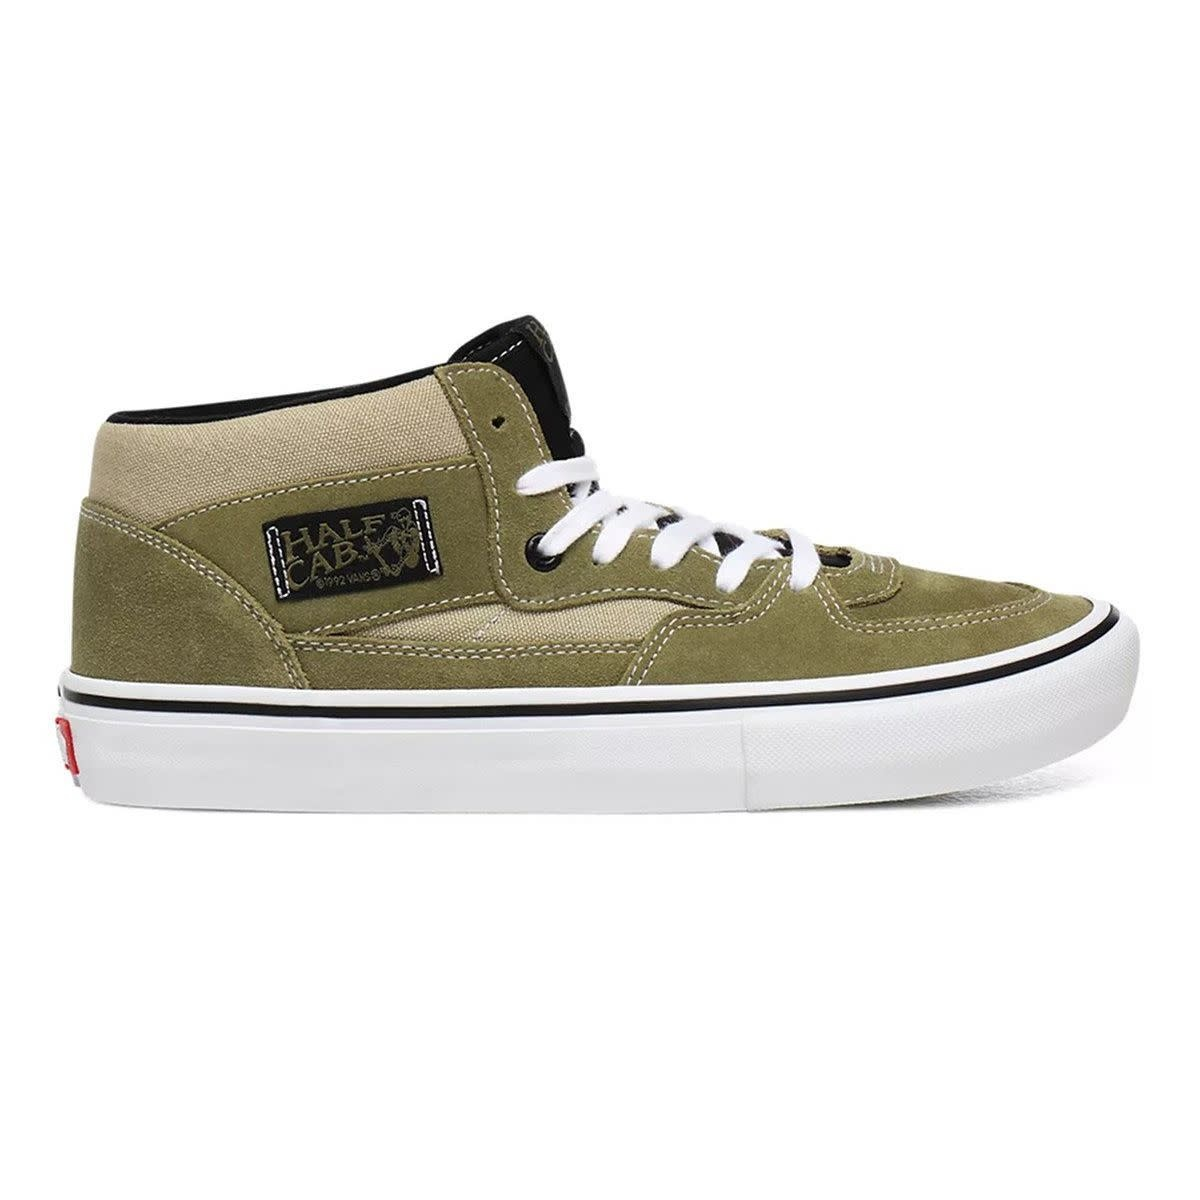 Vans Shoes Half Cab Pro Lizard/White